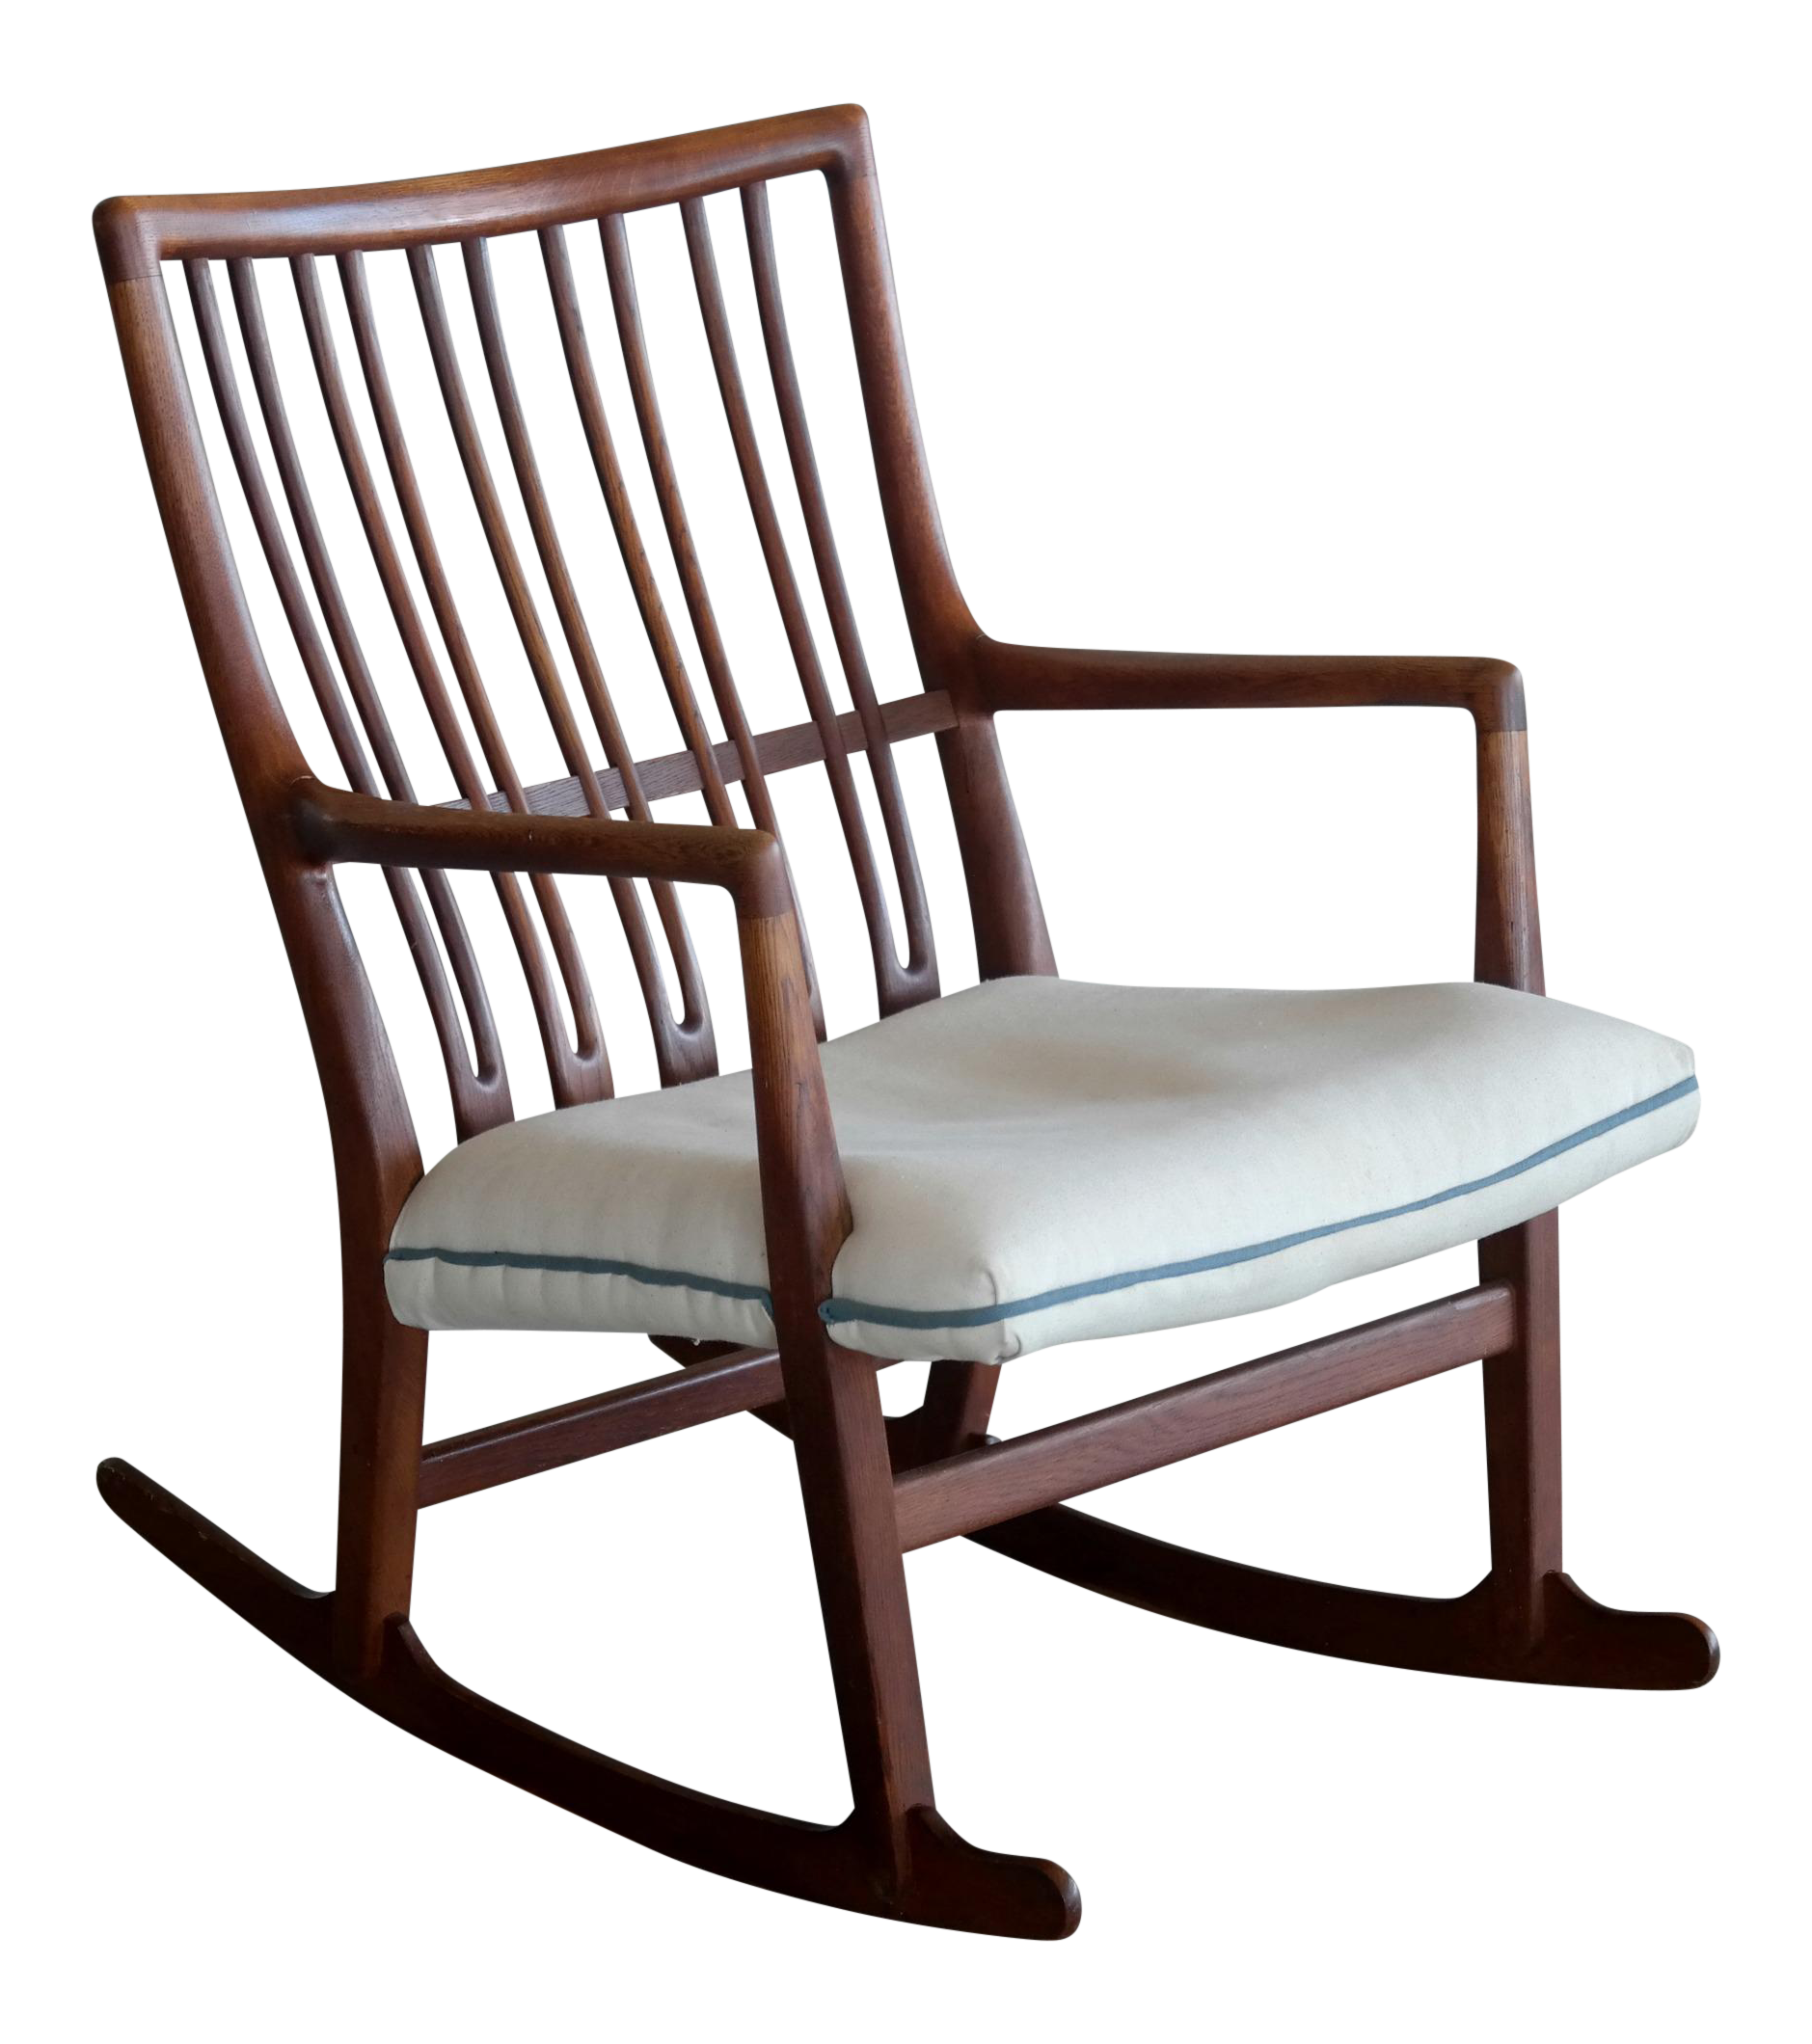 Shop 300 Used Vintage Rocking Chairs at Chairishcom